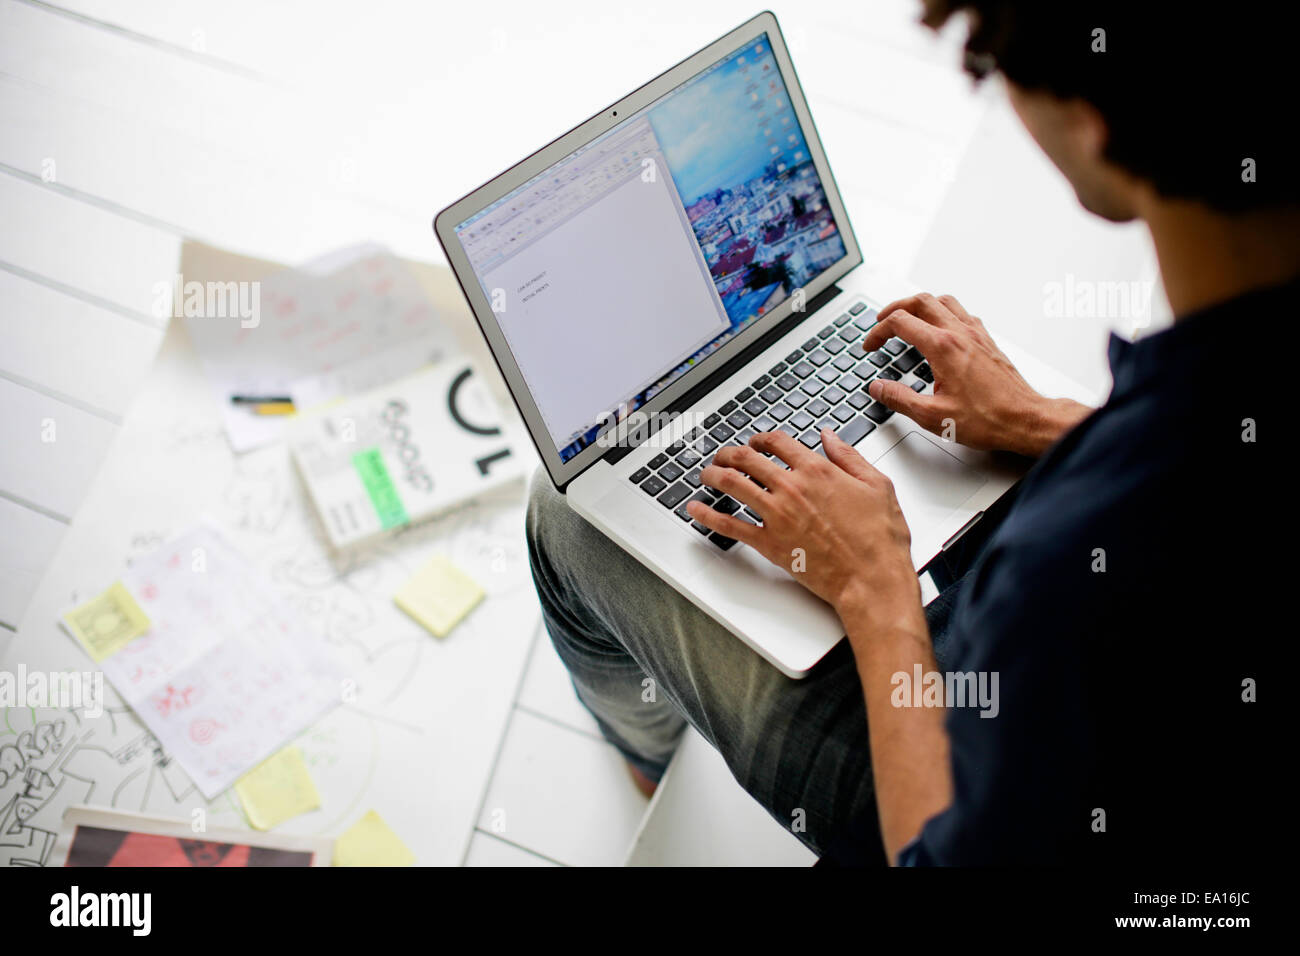 graphic designer using laptop stock photo 75015204 alamy